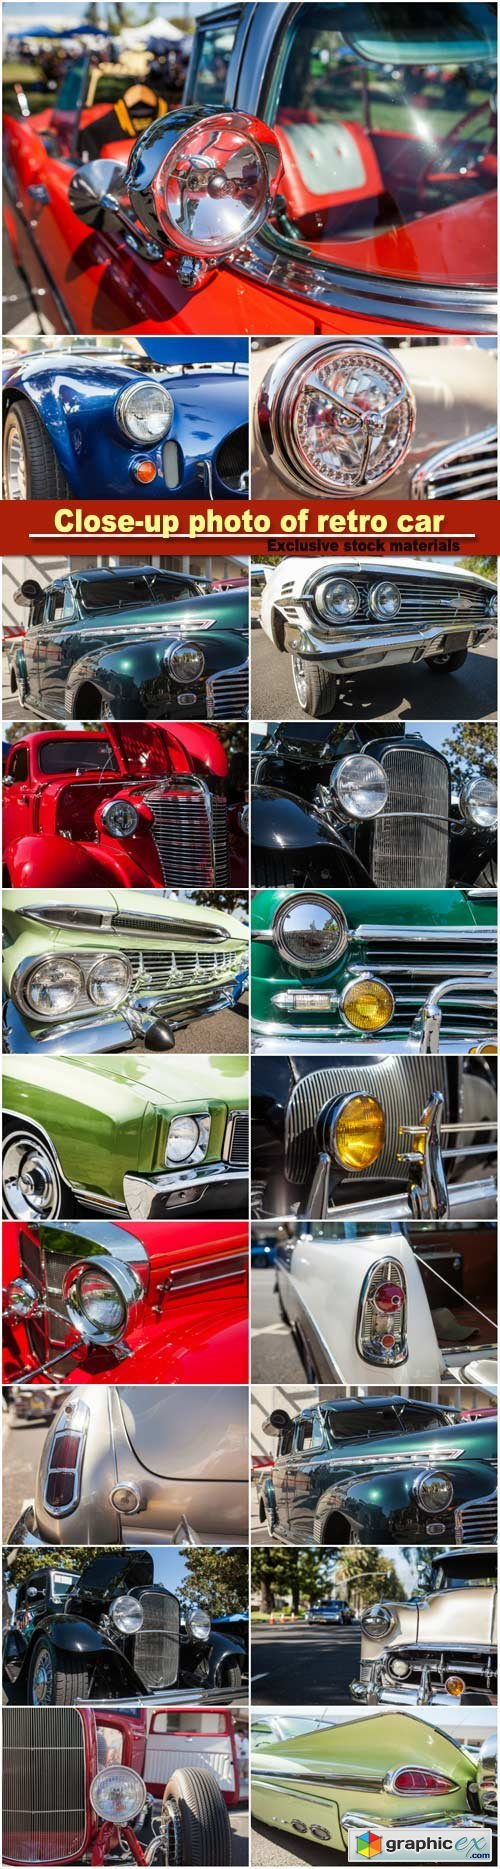 Close-up photo of retro car headlights, old vintage car